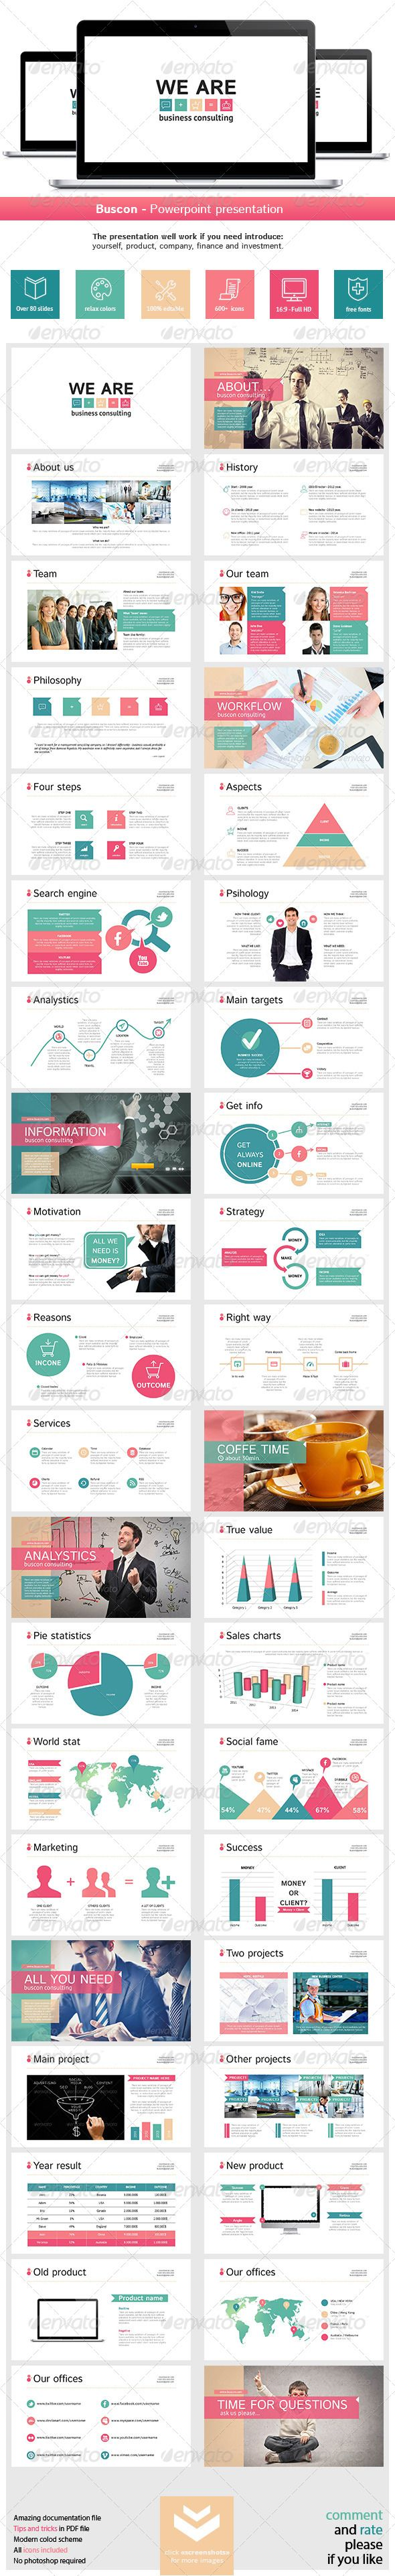 Buscon Powerpoint Presentation - Business Powerpoint Templates